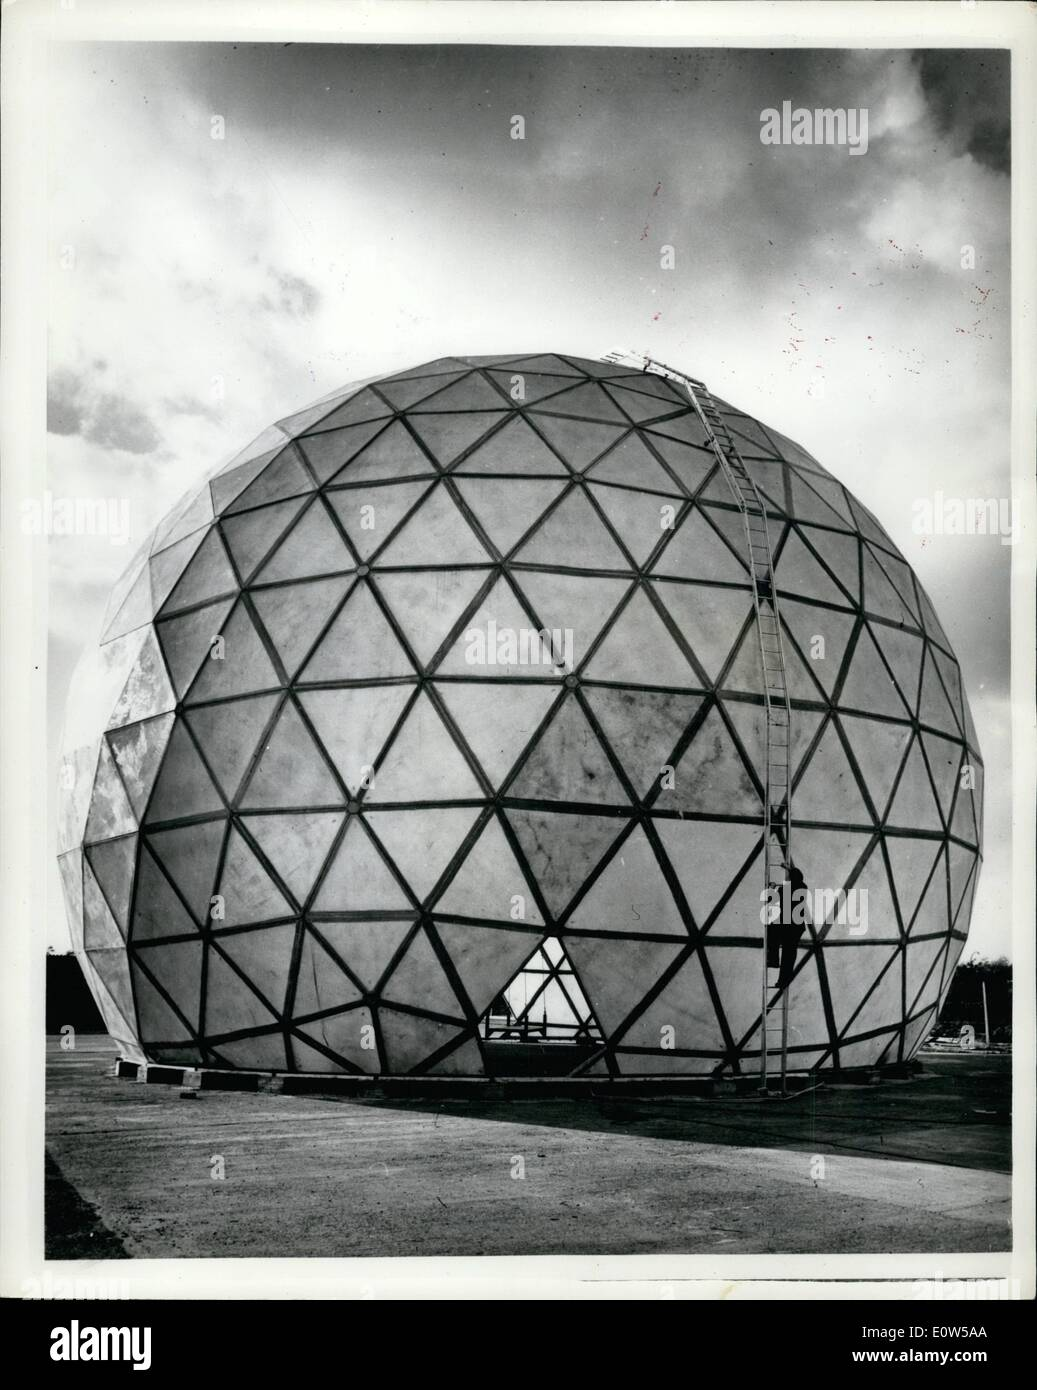 Sep. 09, 1961 - Europe's Largest Reinforced Plastic Structure Completed: The largest reinforced plastics structure yet made in Europe, a ground radome, which looks like a giant three-quarter football, has just been completed and erected for test by English Electric at Freckleton, Lancs. The structure, for the Protection of the defence radar equipment, is designed to Withstand hurricane force winds and temperature well below zero.It is nearly 70 feet in diameter and more than 50 feet high. Photo Shows A workmen climbing a ladder on the redome at Freckleton. - Stock Image